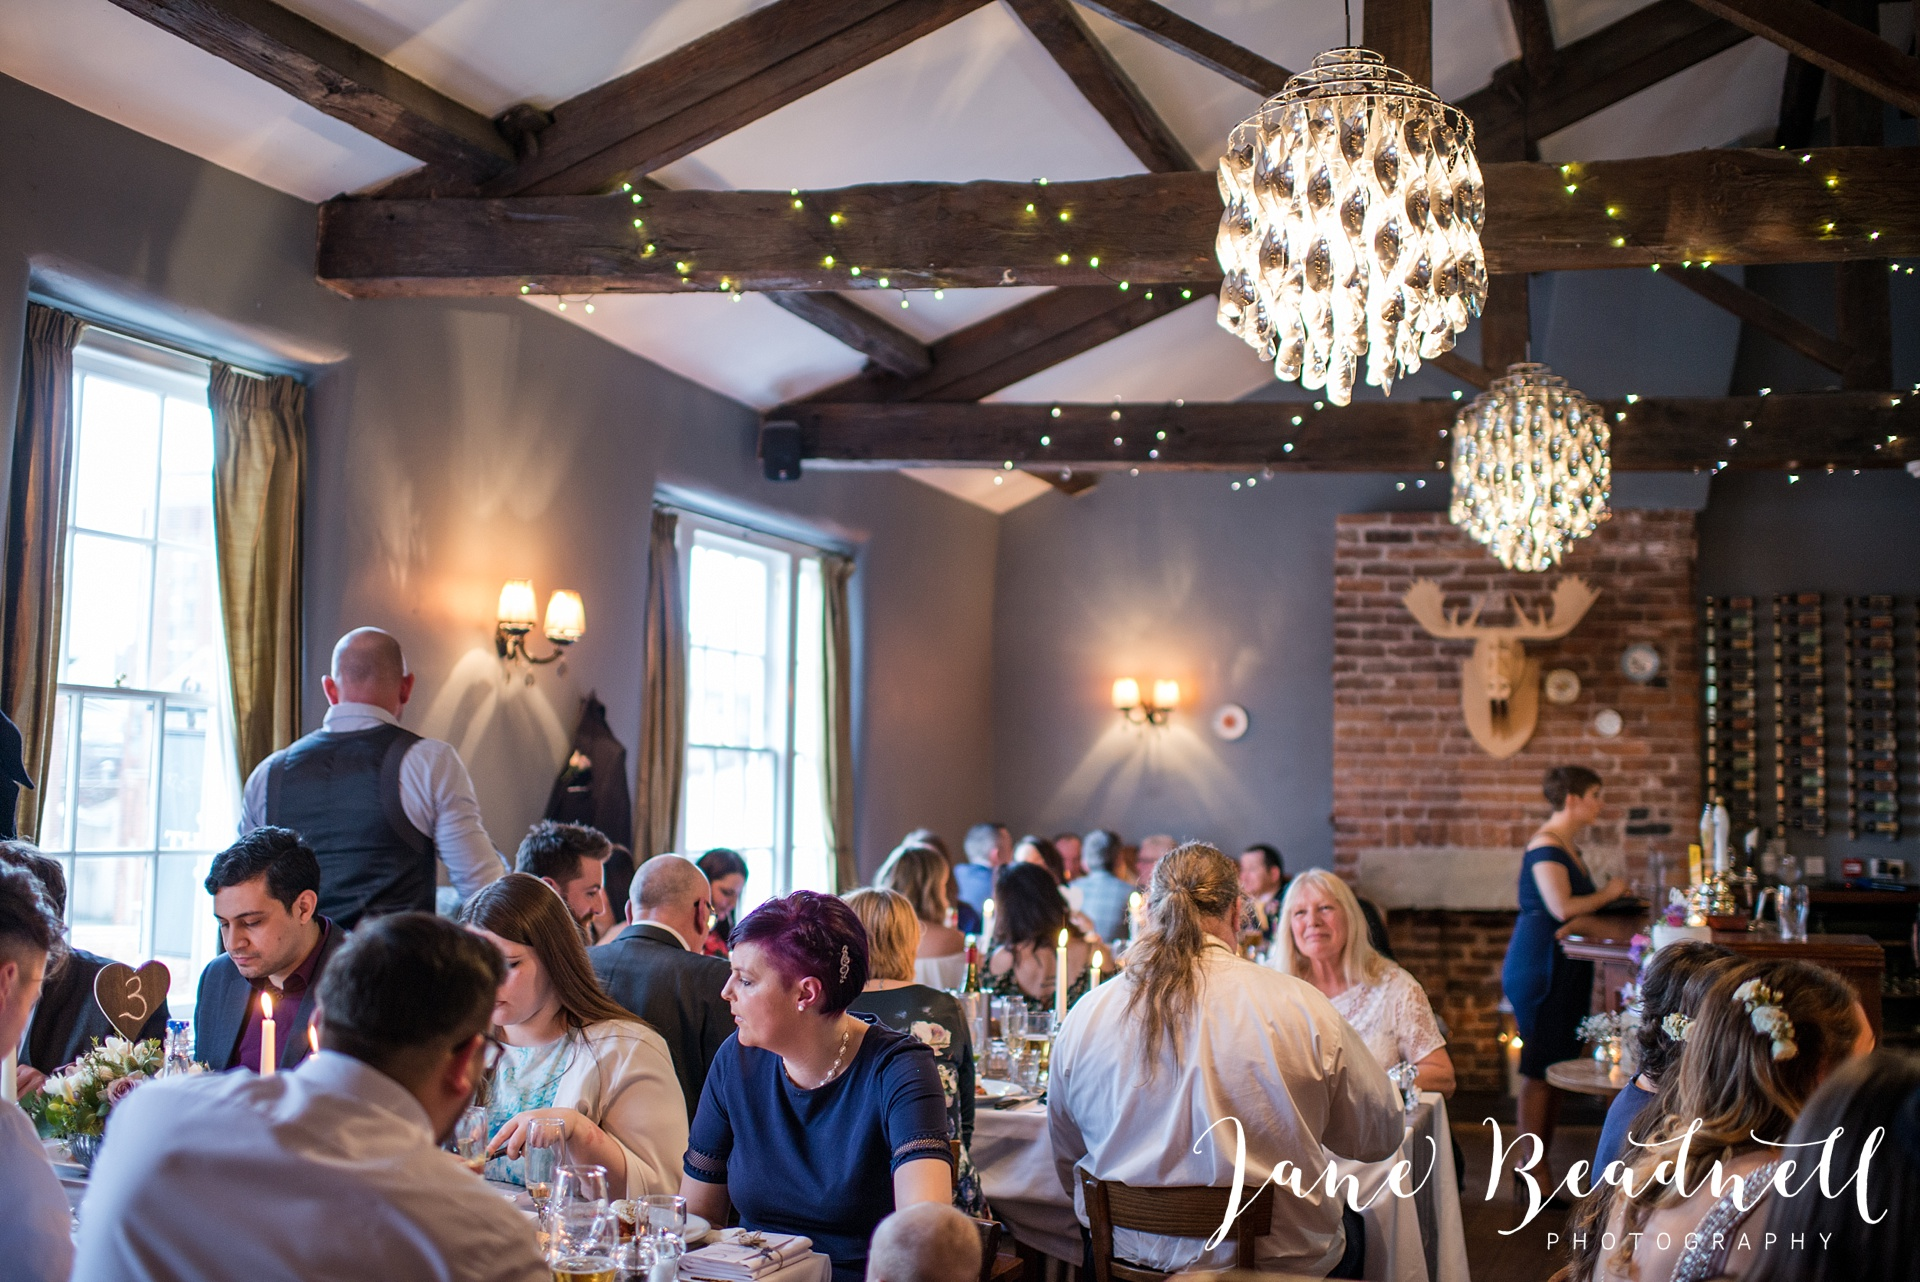 Wedding photography Cross Keys Leeds Wedding Jane Beadnell Photography_0142